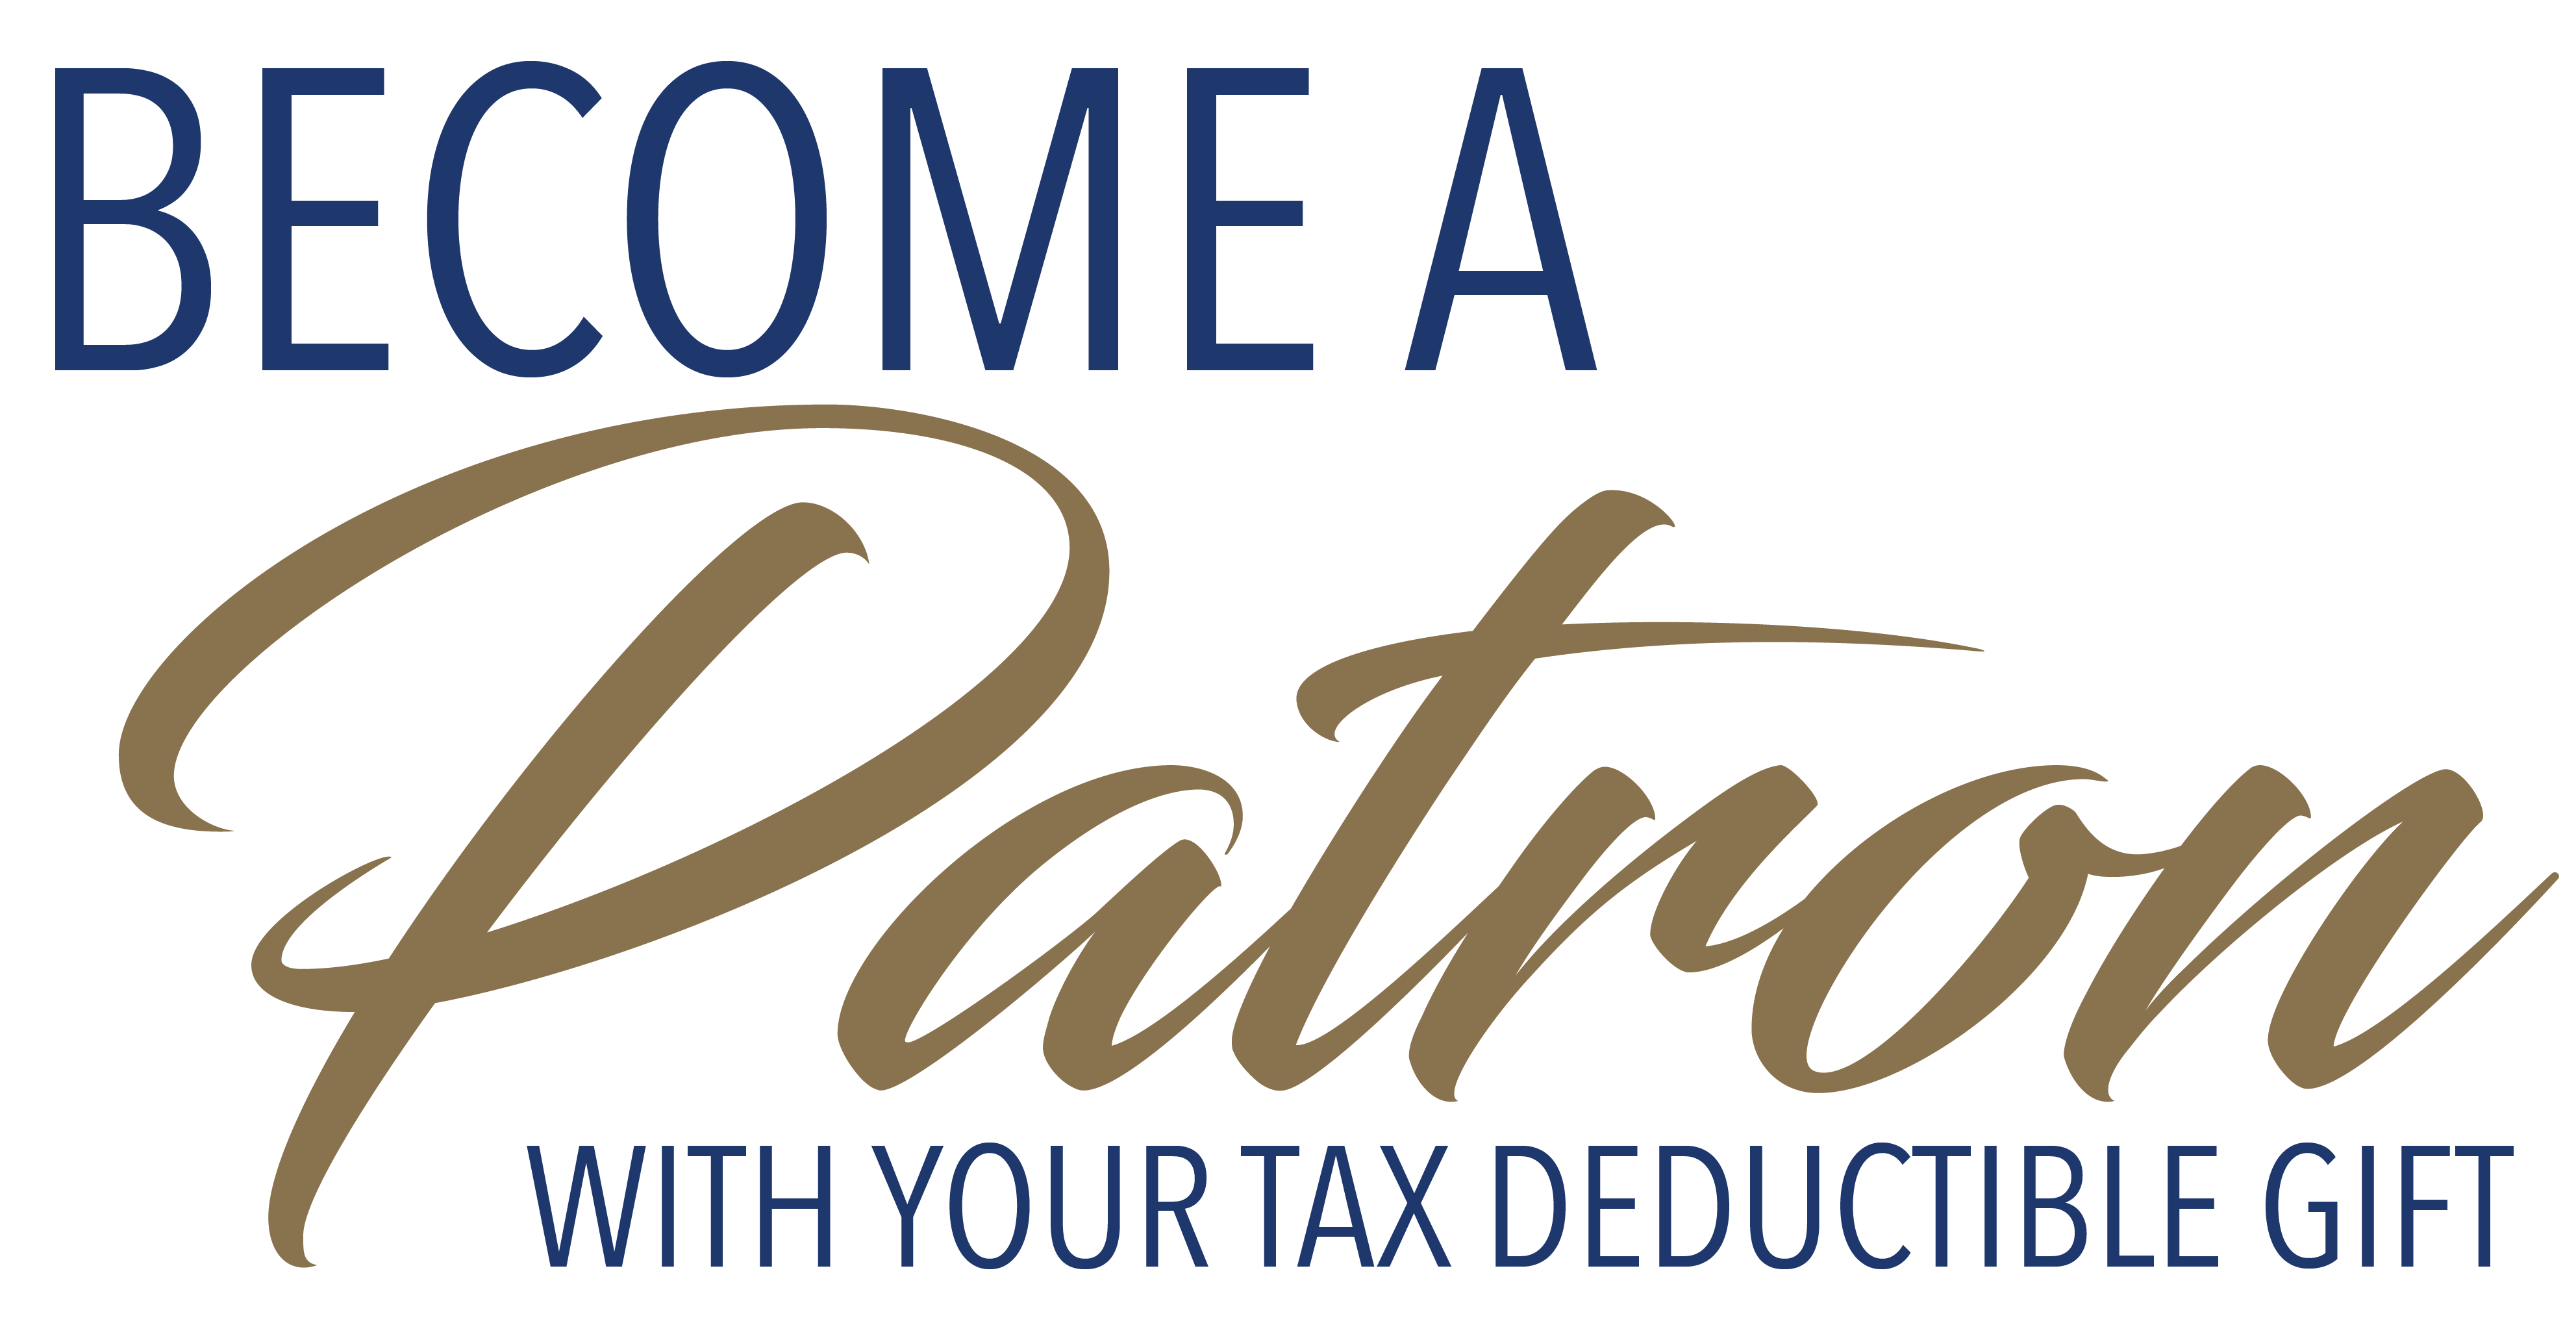 Become a patron with your tax deductible gift